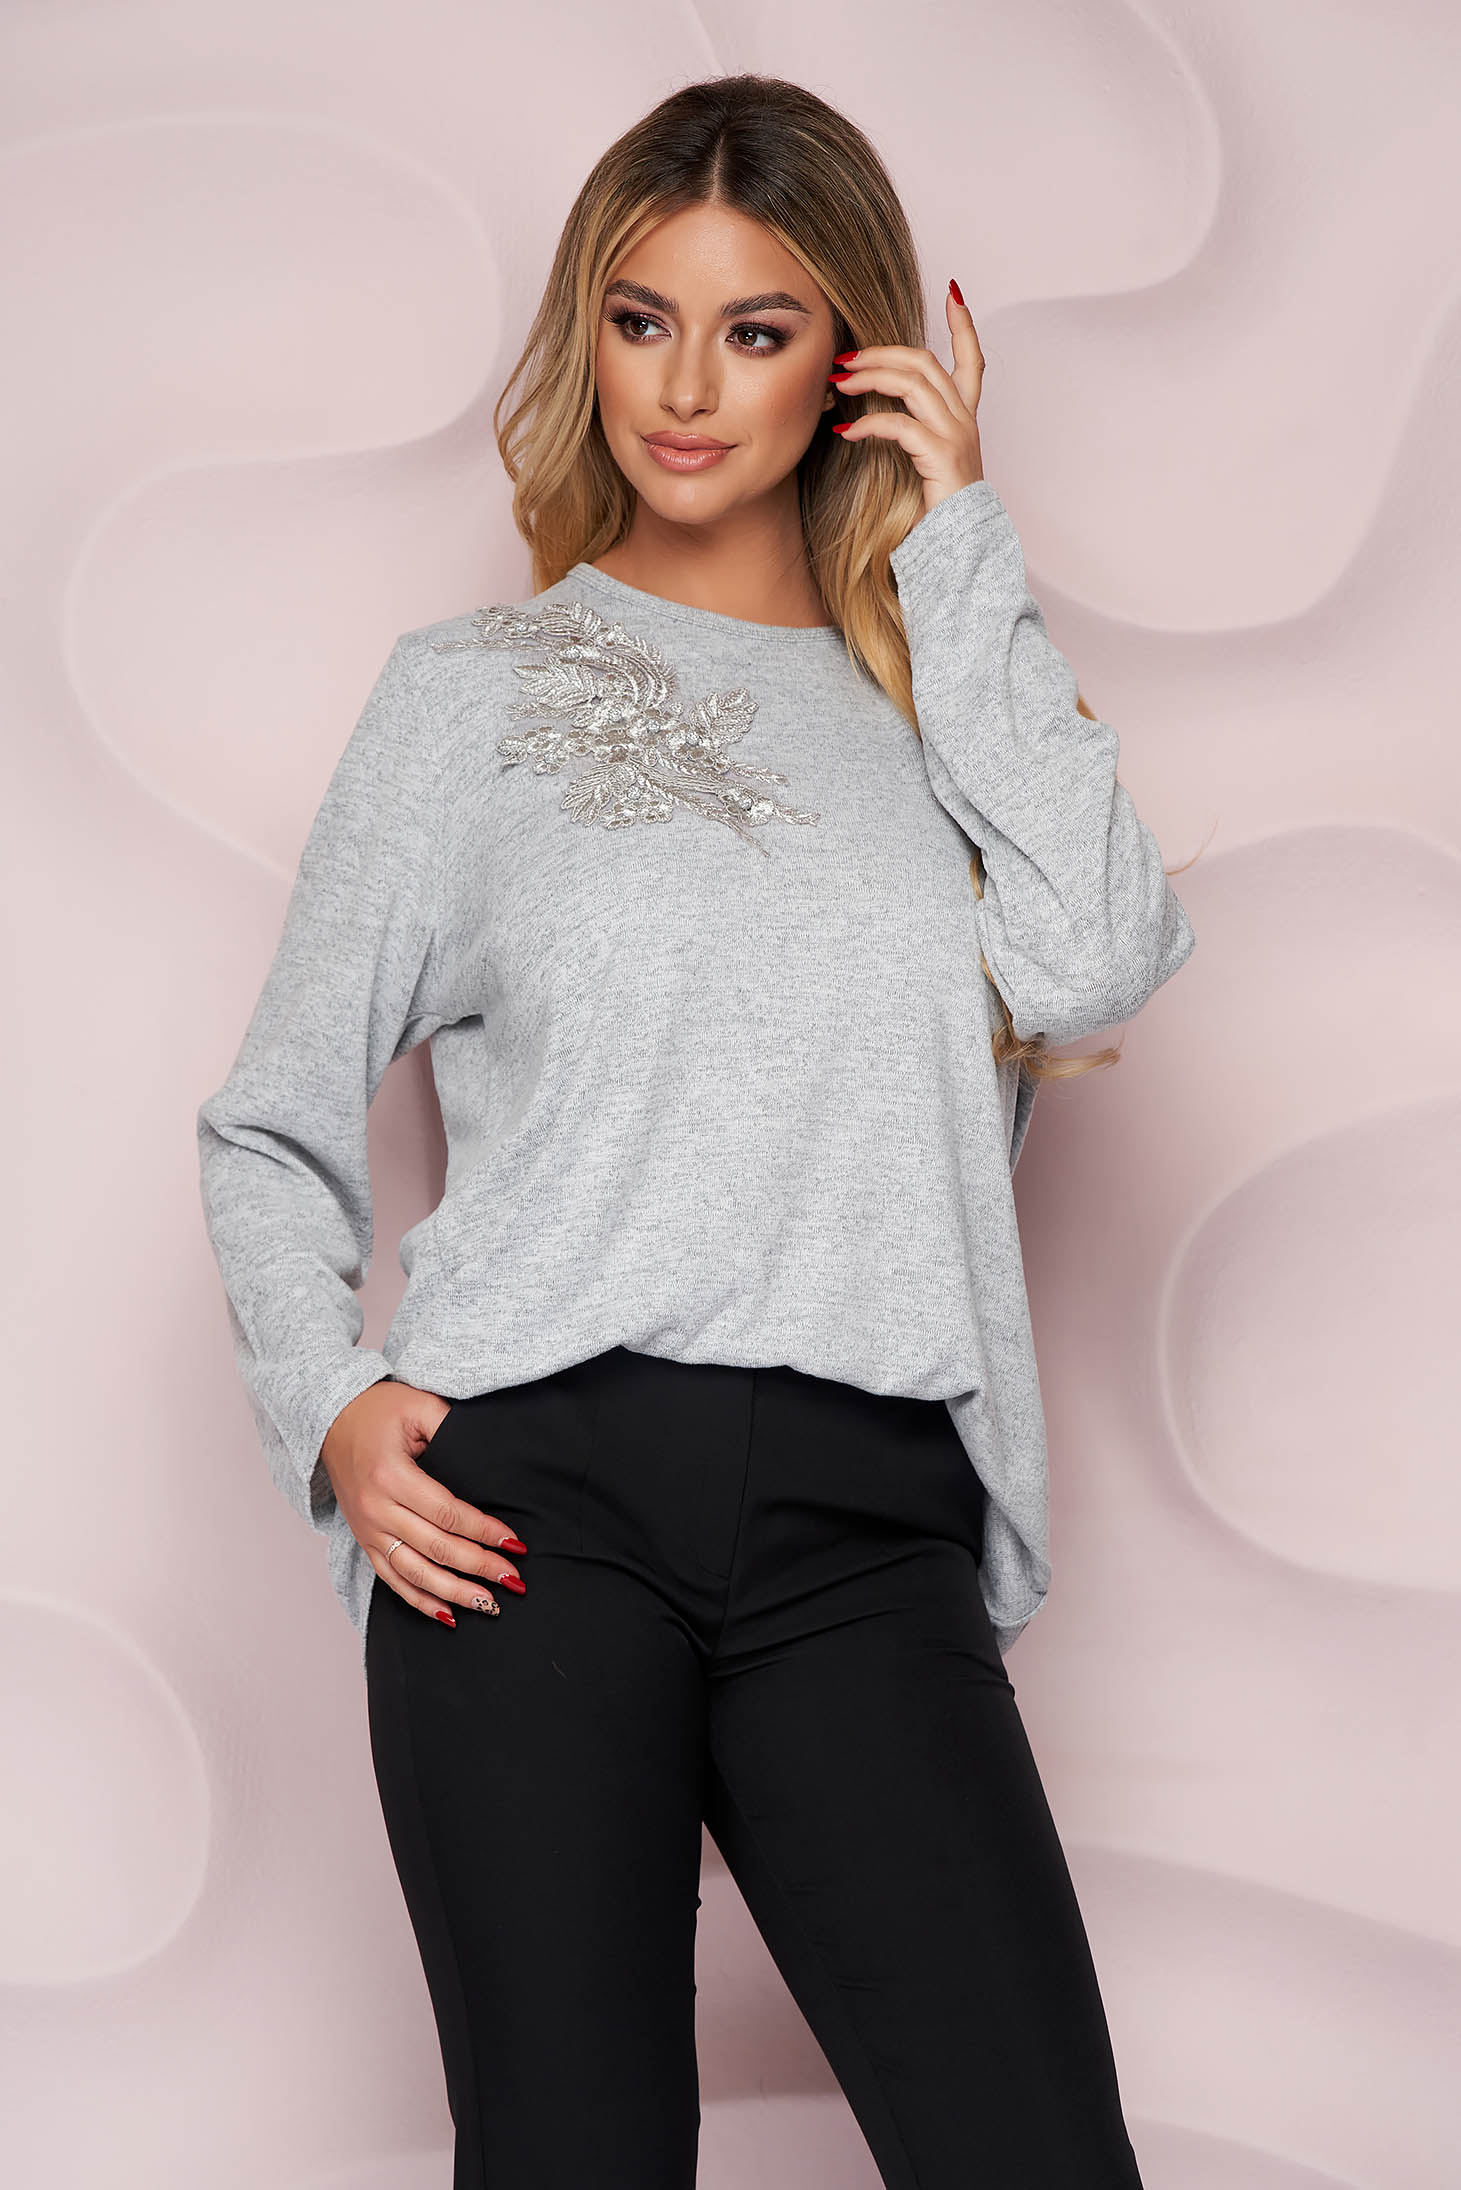 Grey sweater office loose fit thin fabric from elastic fabric knitted fabric